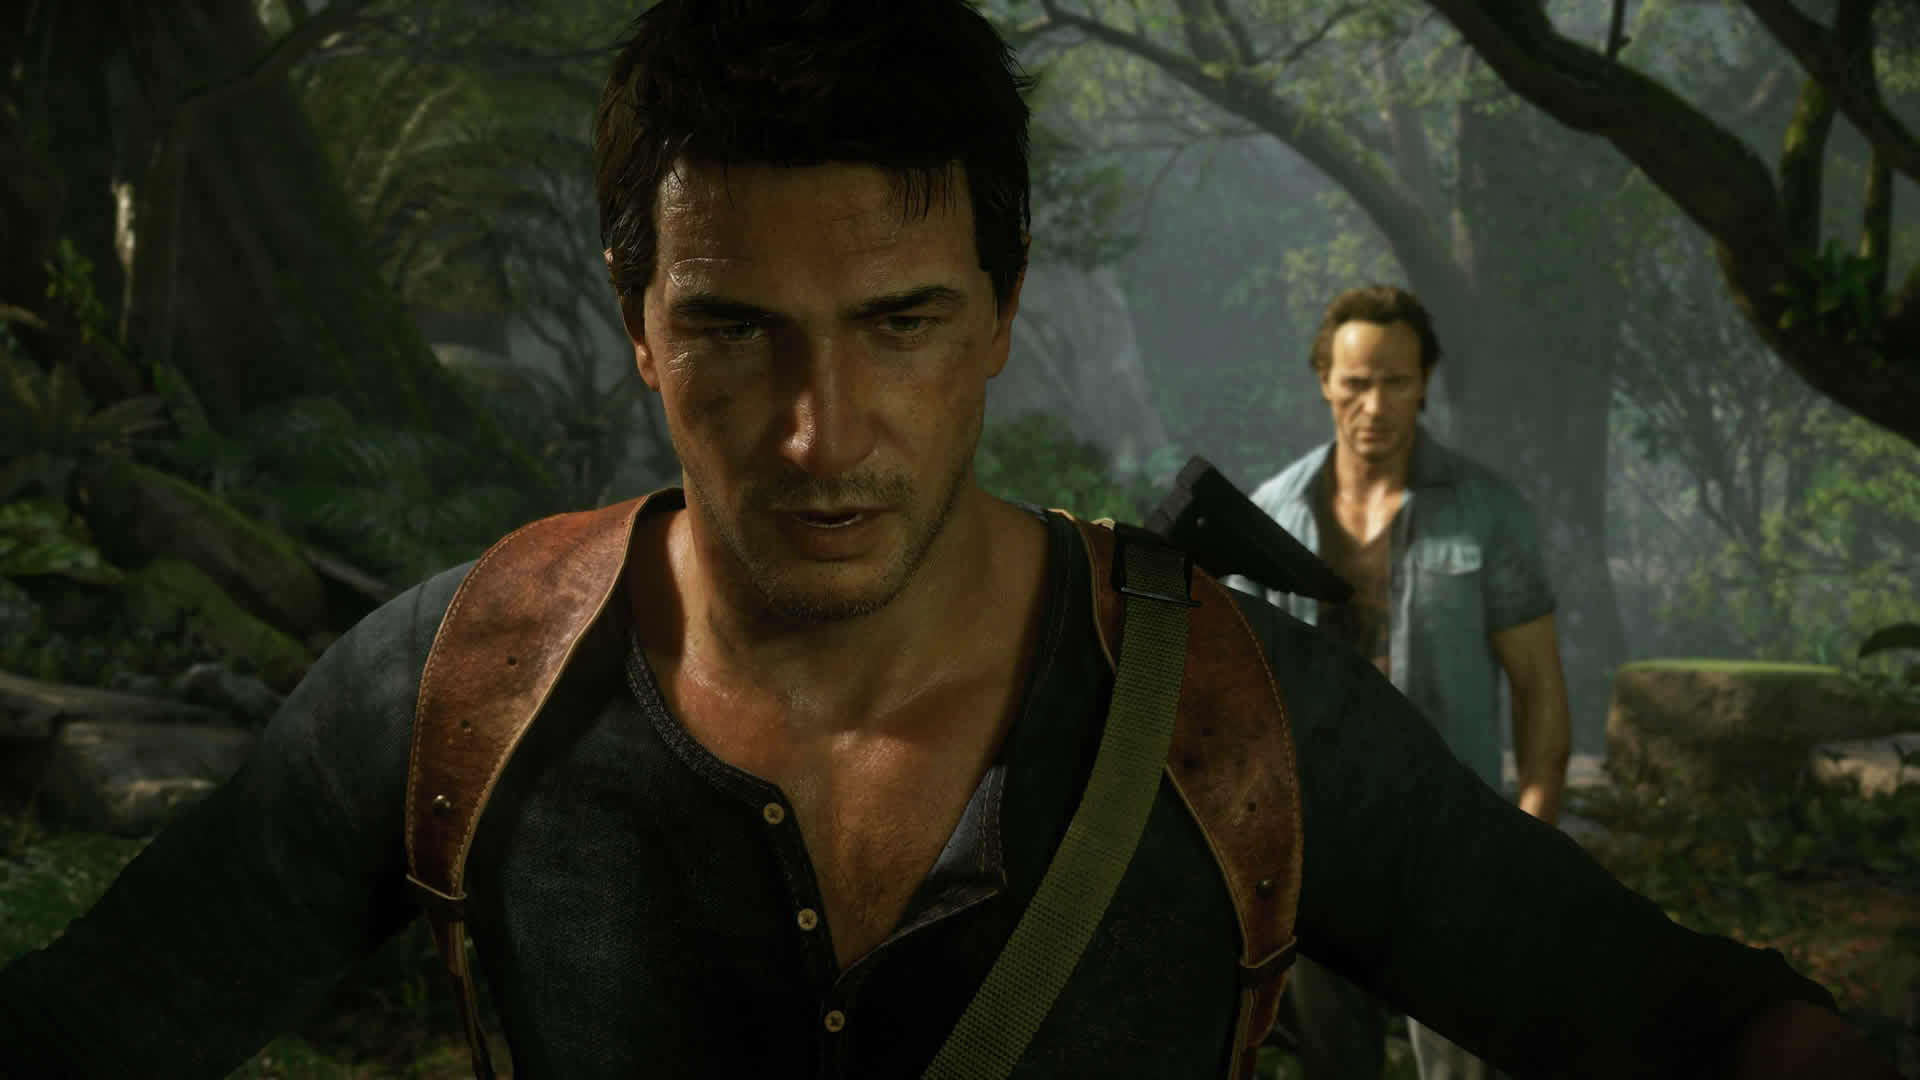 Uncharted 4s Story Changed 100% After New Directors Joined uncharted 4 drake close up 1421239570